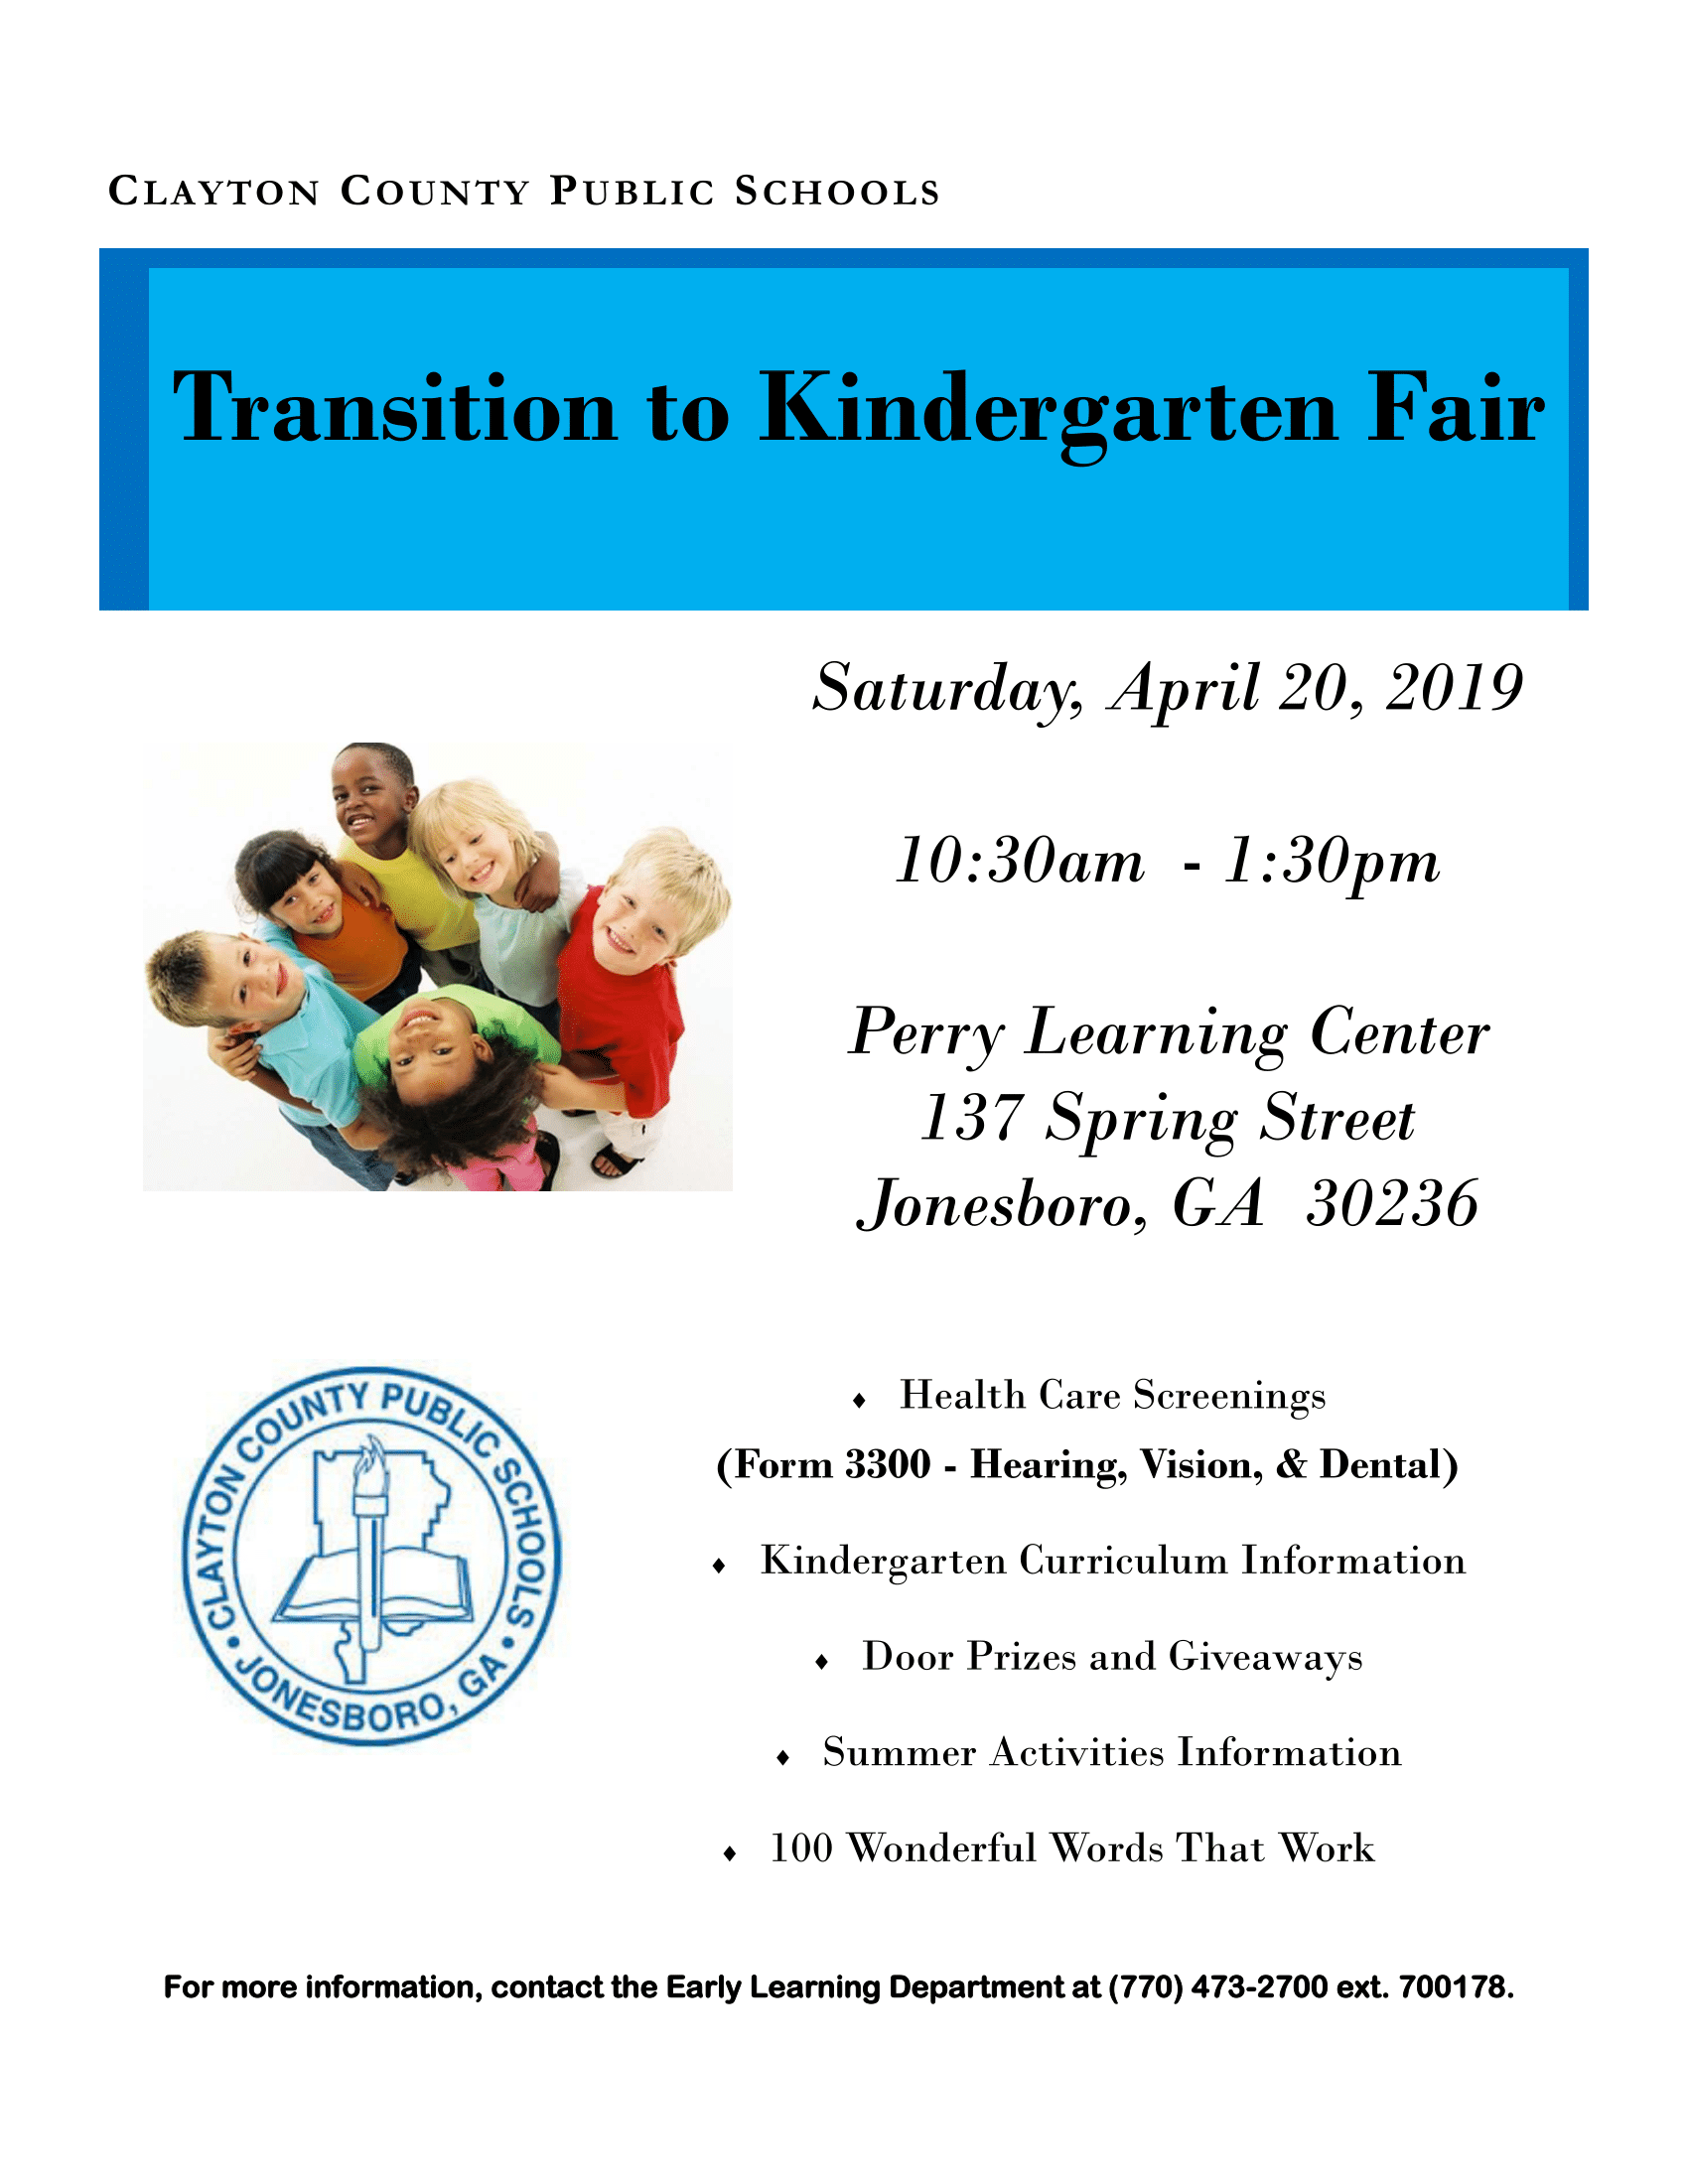 Transition into kindergarten